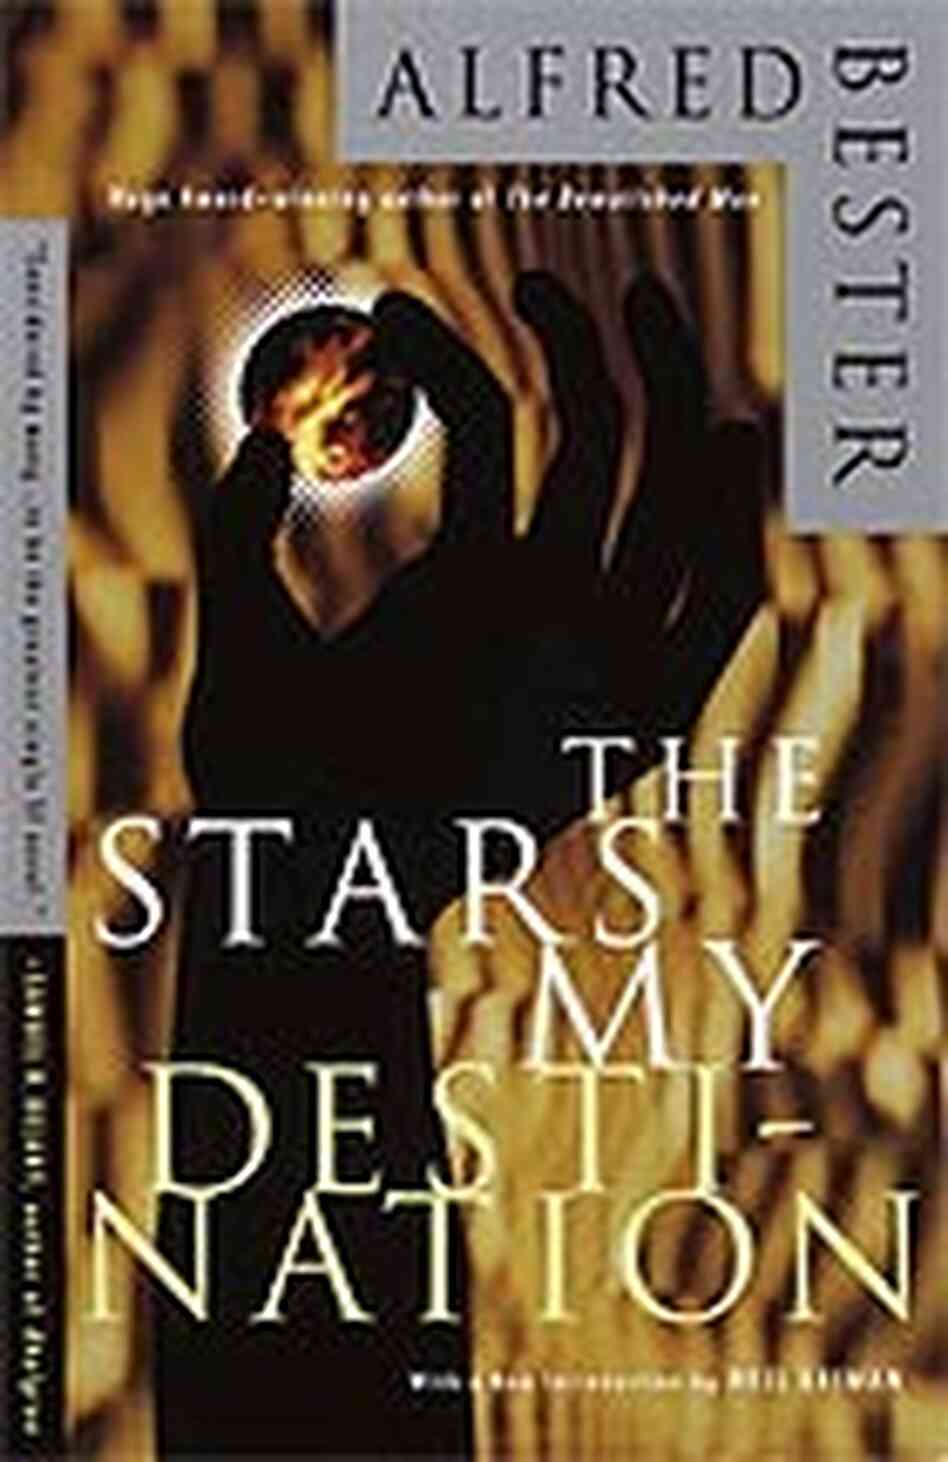 'The Stars My Destination' by Alfred Bester